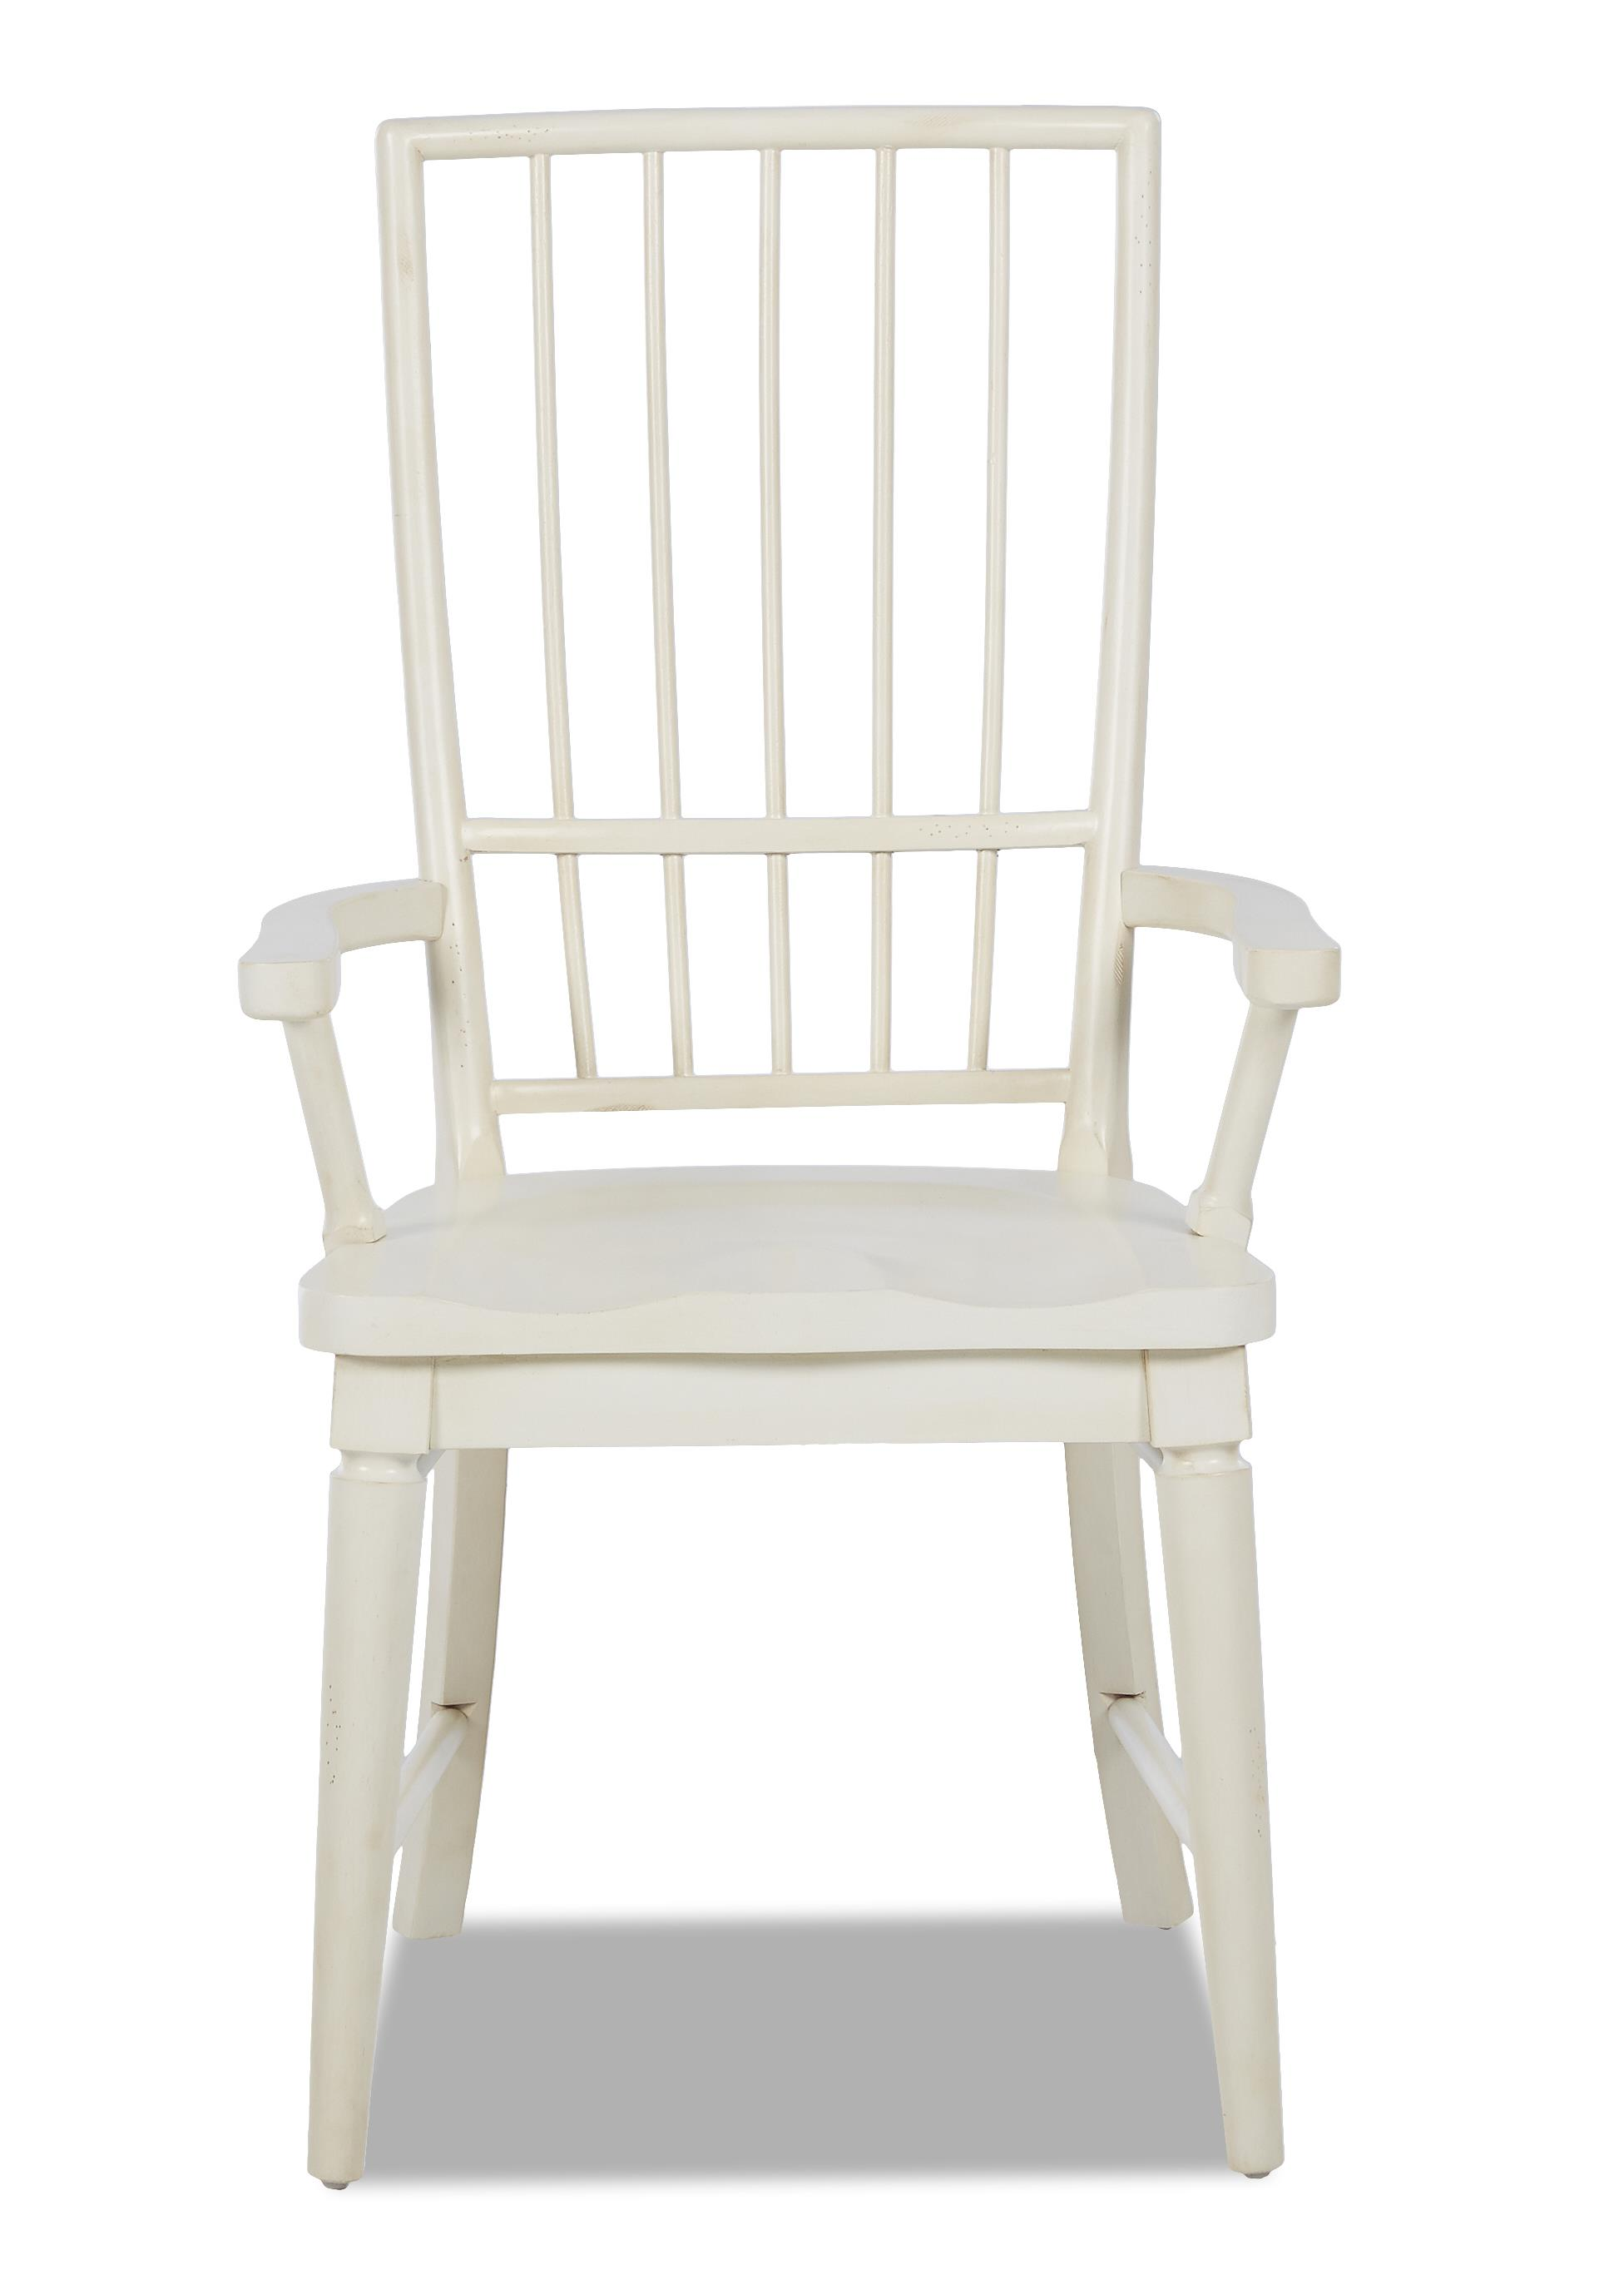 Easton Collection Sea Breeze White Rake Back Arm Chair - Item Number: 424-905 DRC